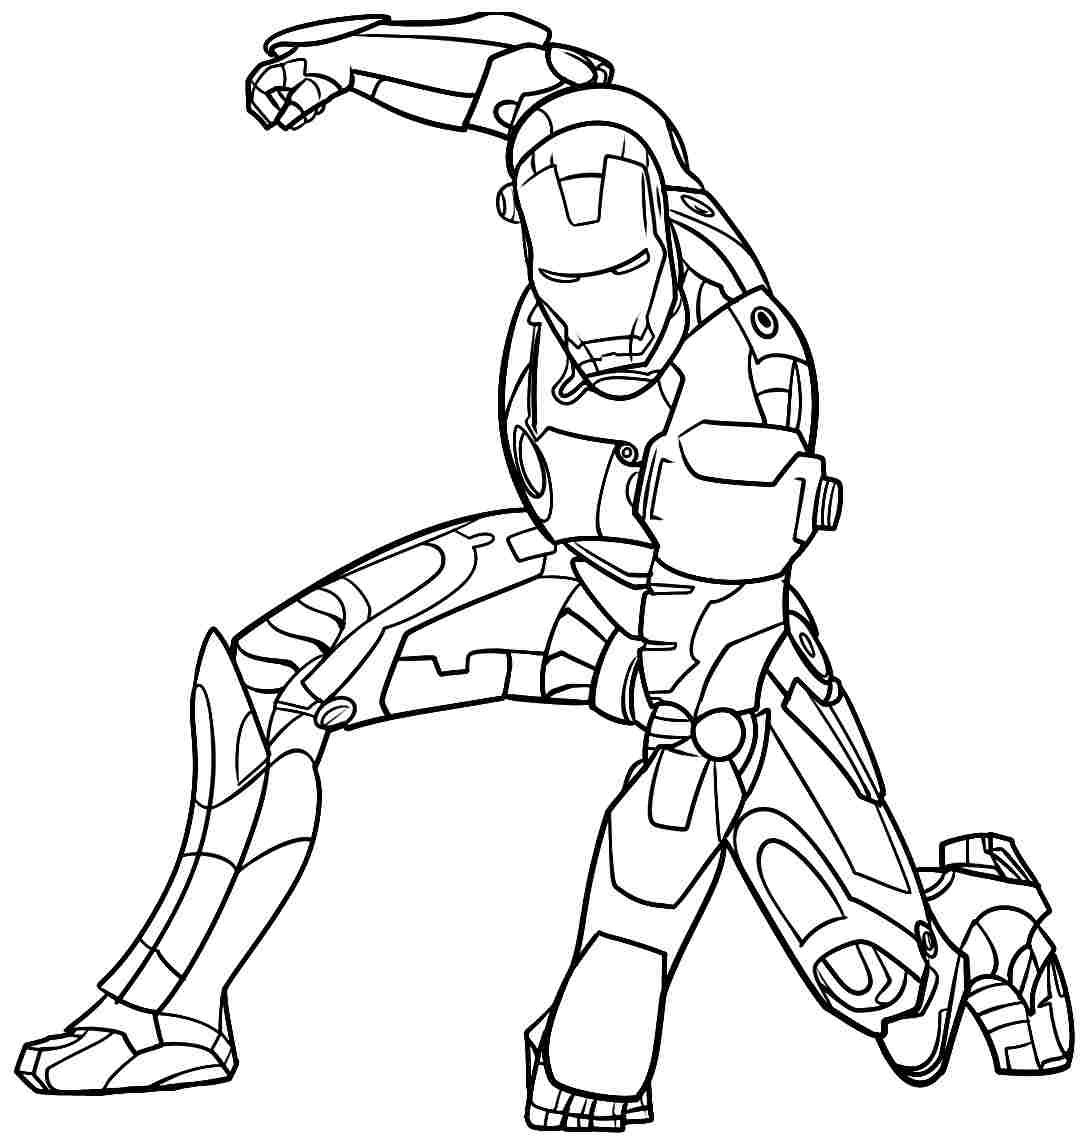 ironman colouring pin by sarah lo on coloring sheet superhero coloring ironman colouring